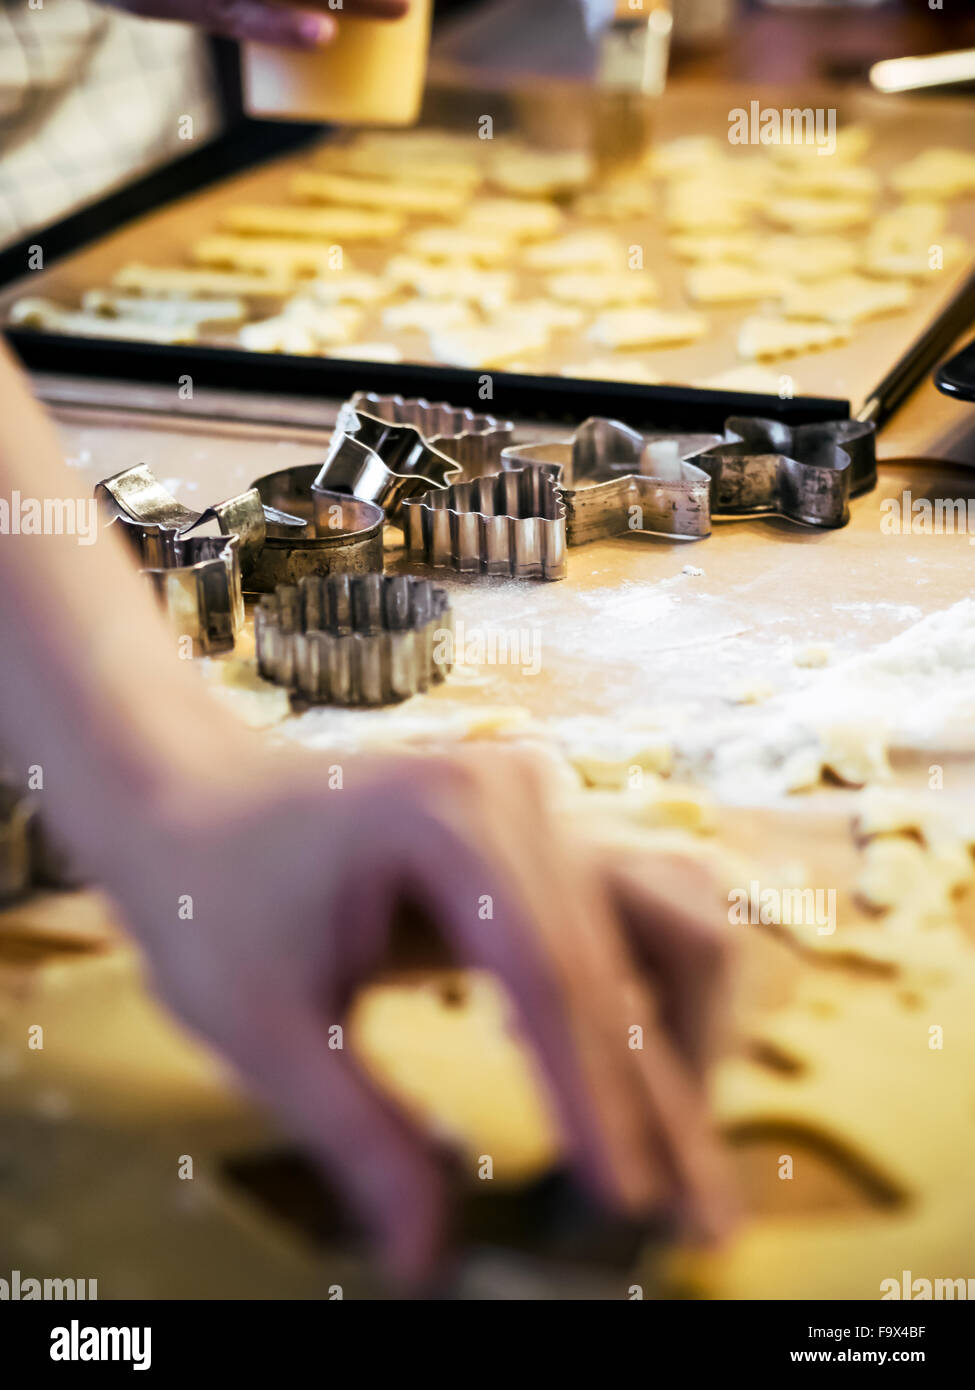 Different cookie cutters for Christmas bakery - Stock Image